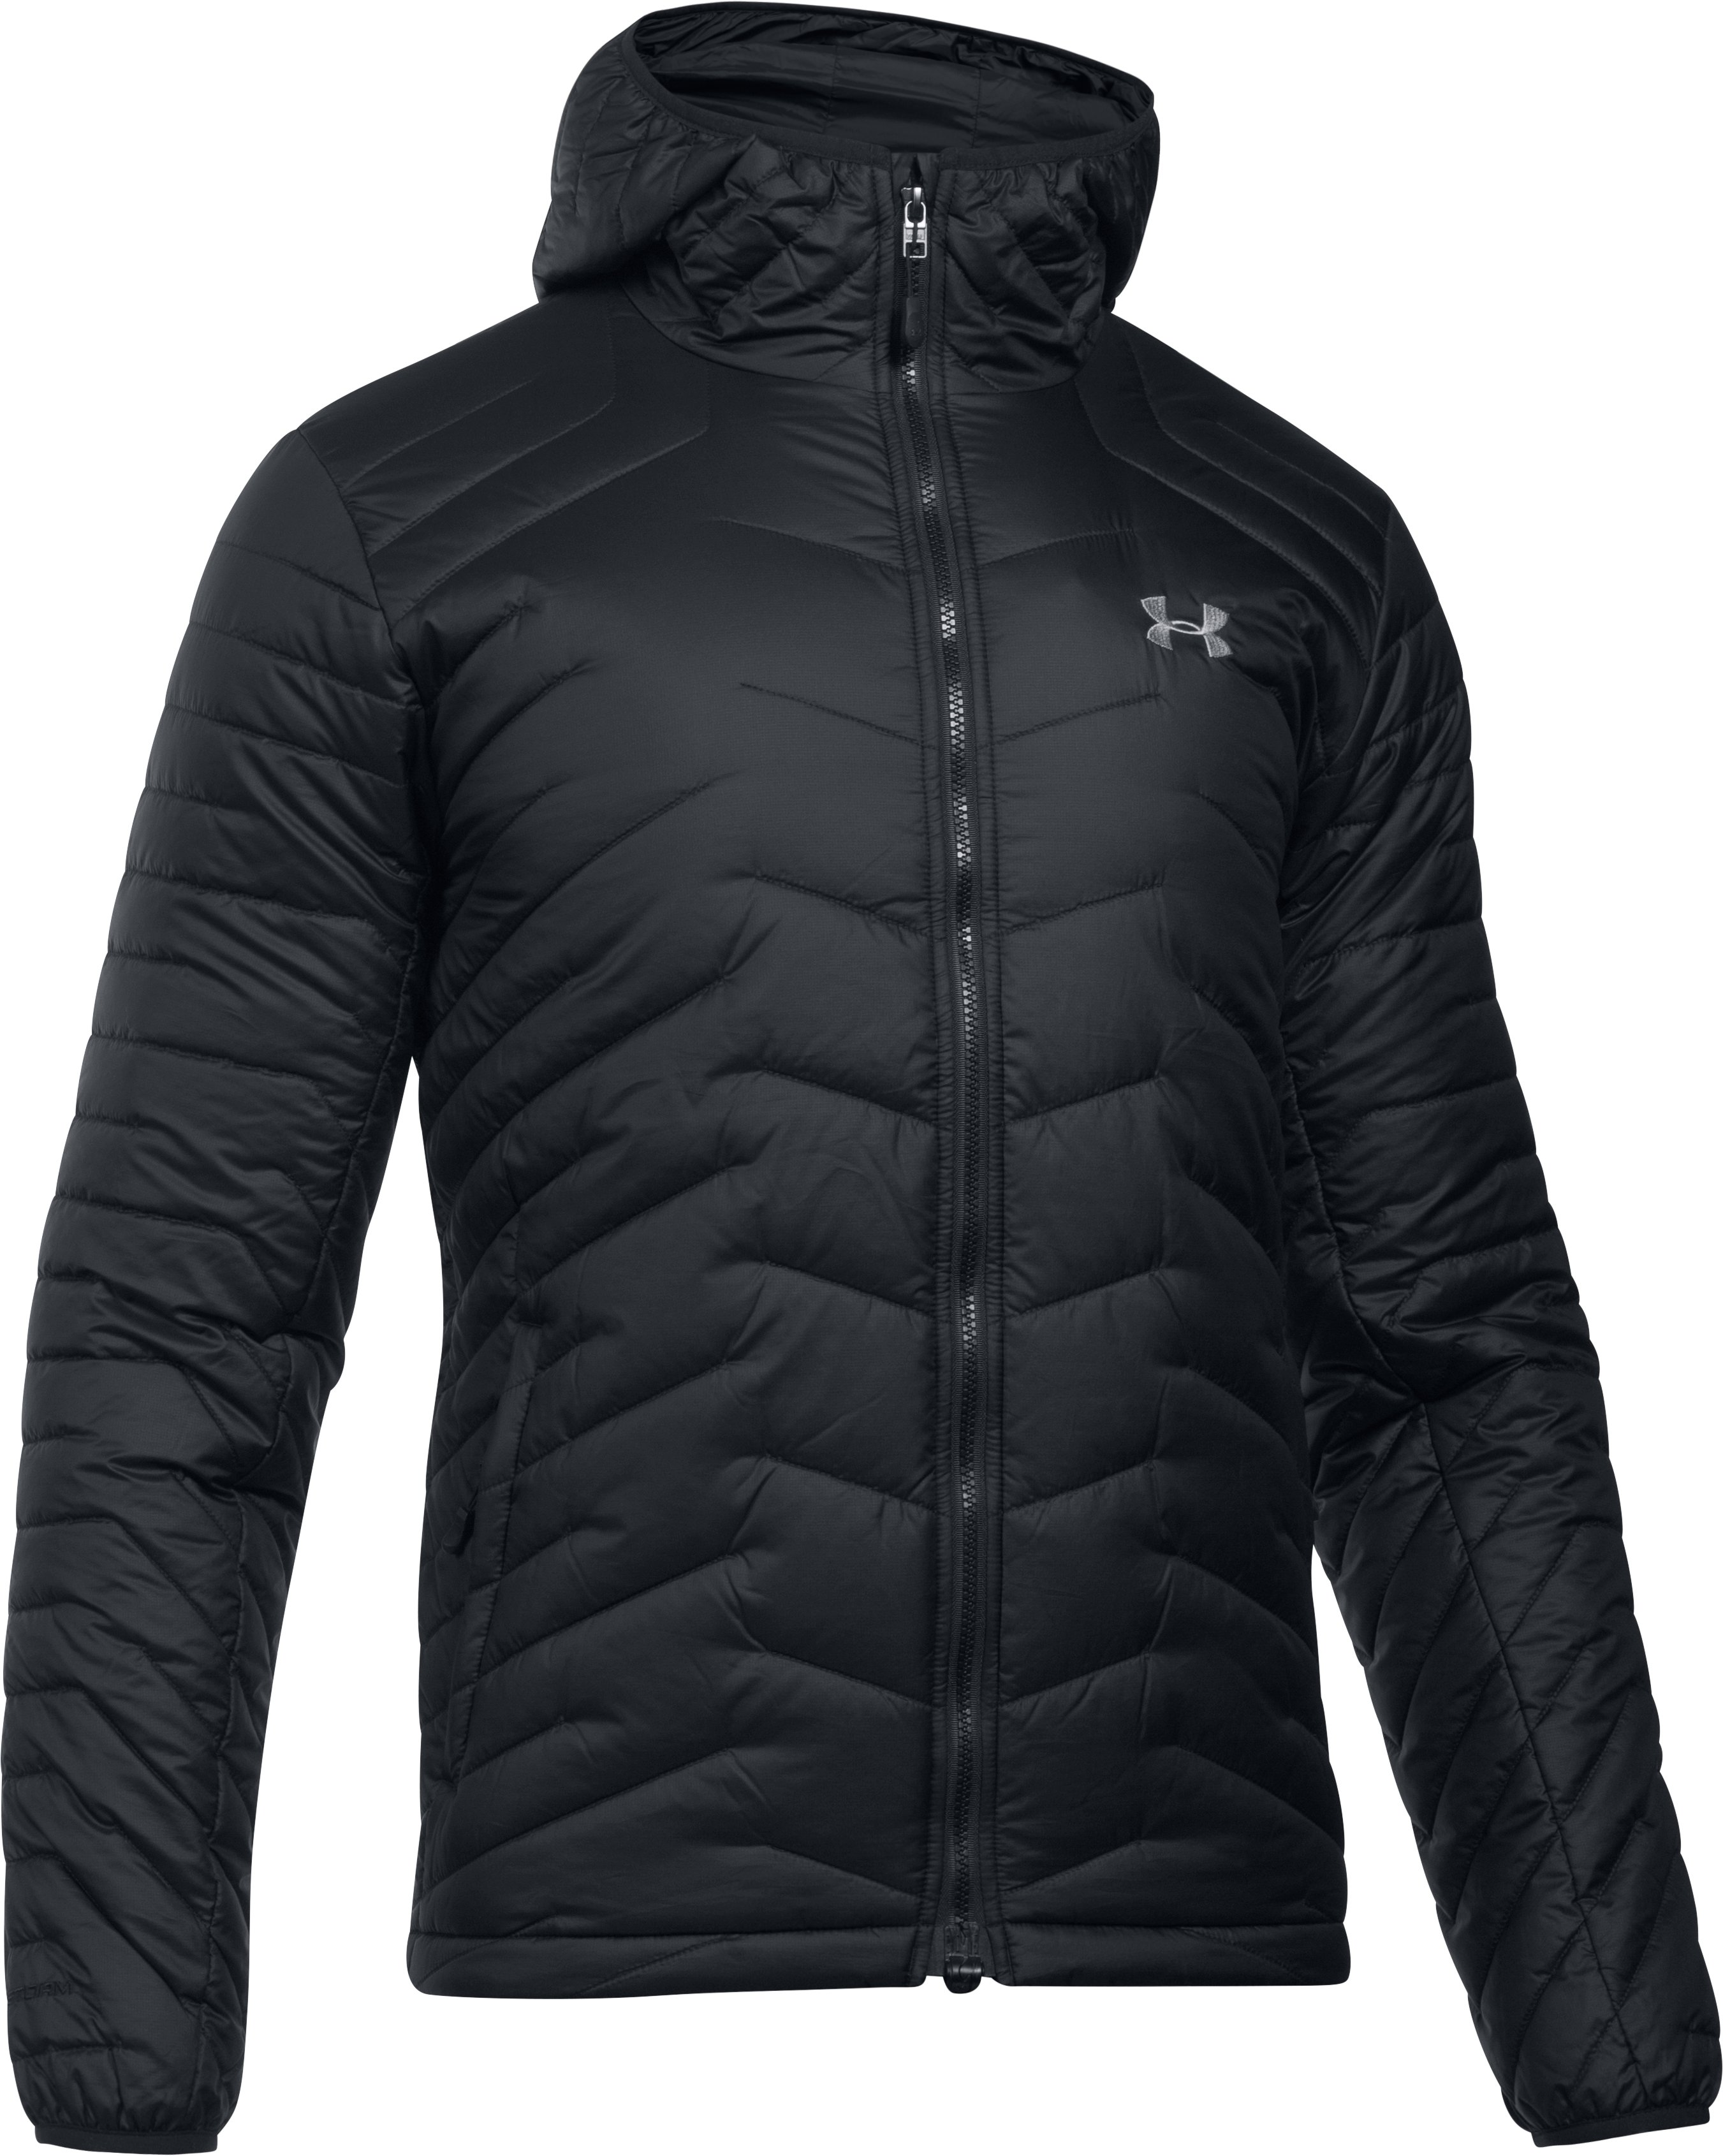 Men's ColdGear® Reactor Hooded Jacket, Black , undefined